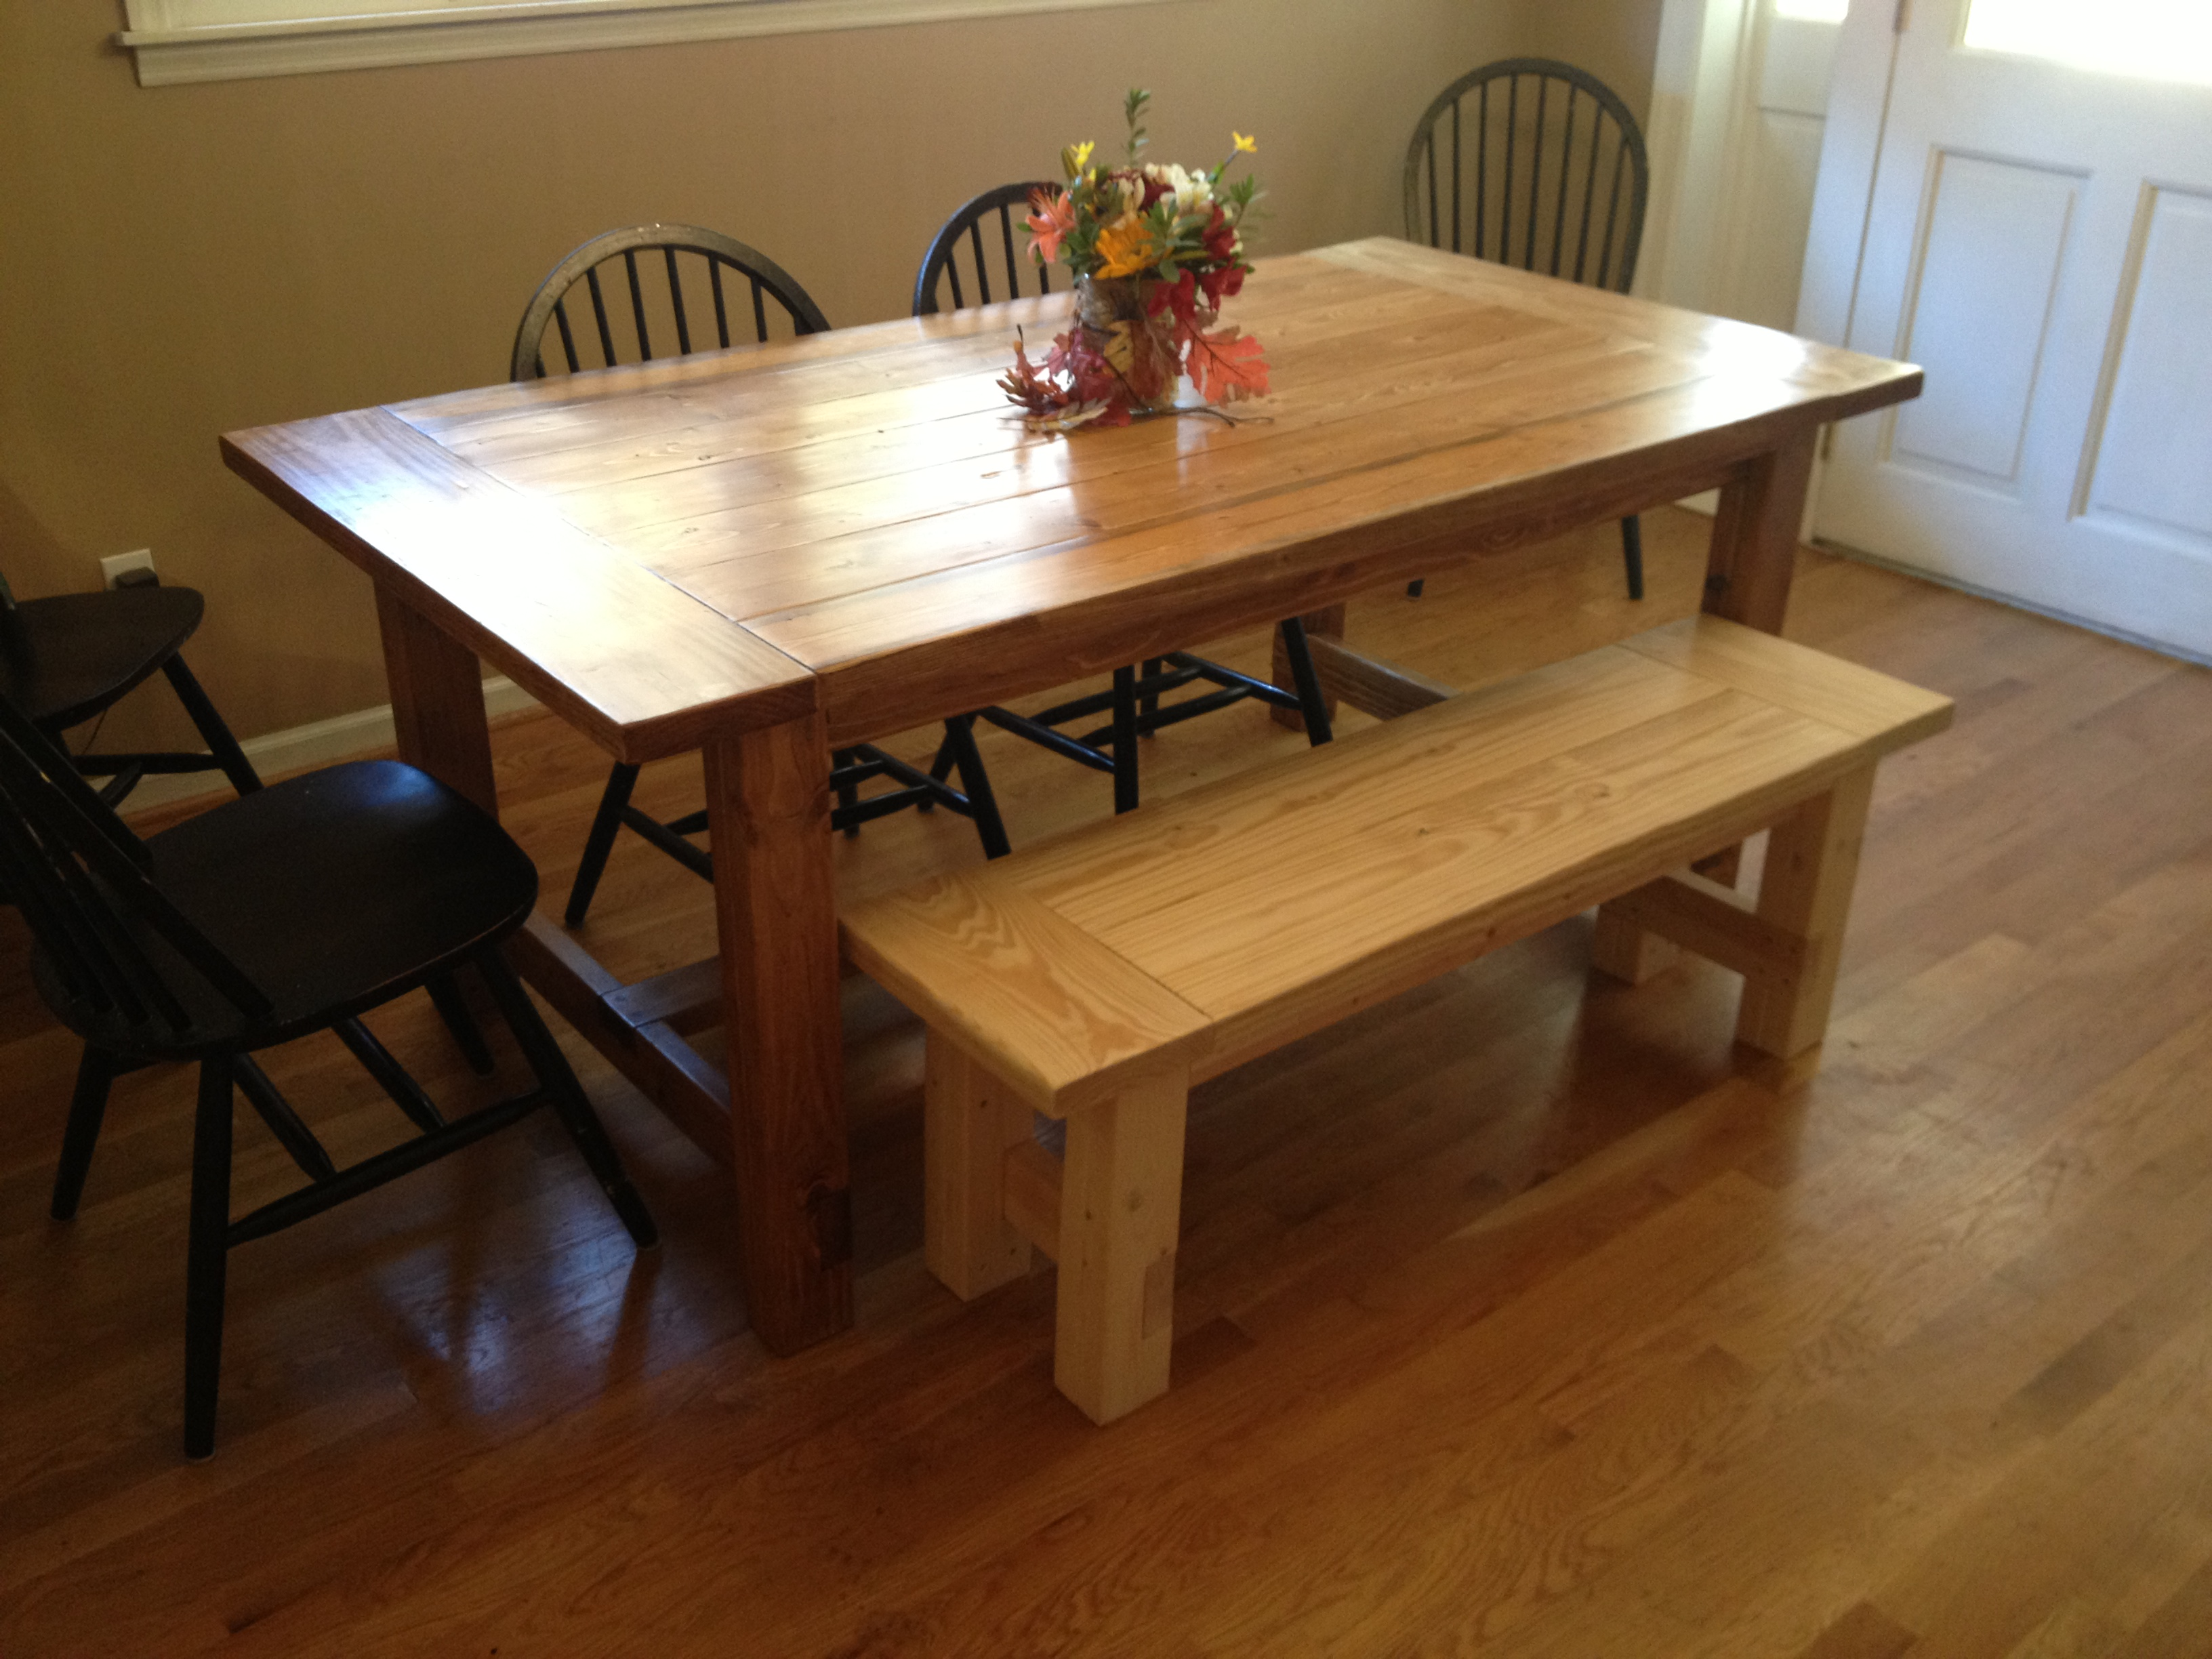 Rustic Farmhouse Table Bench Plans